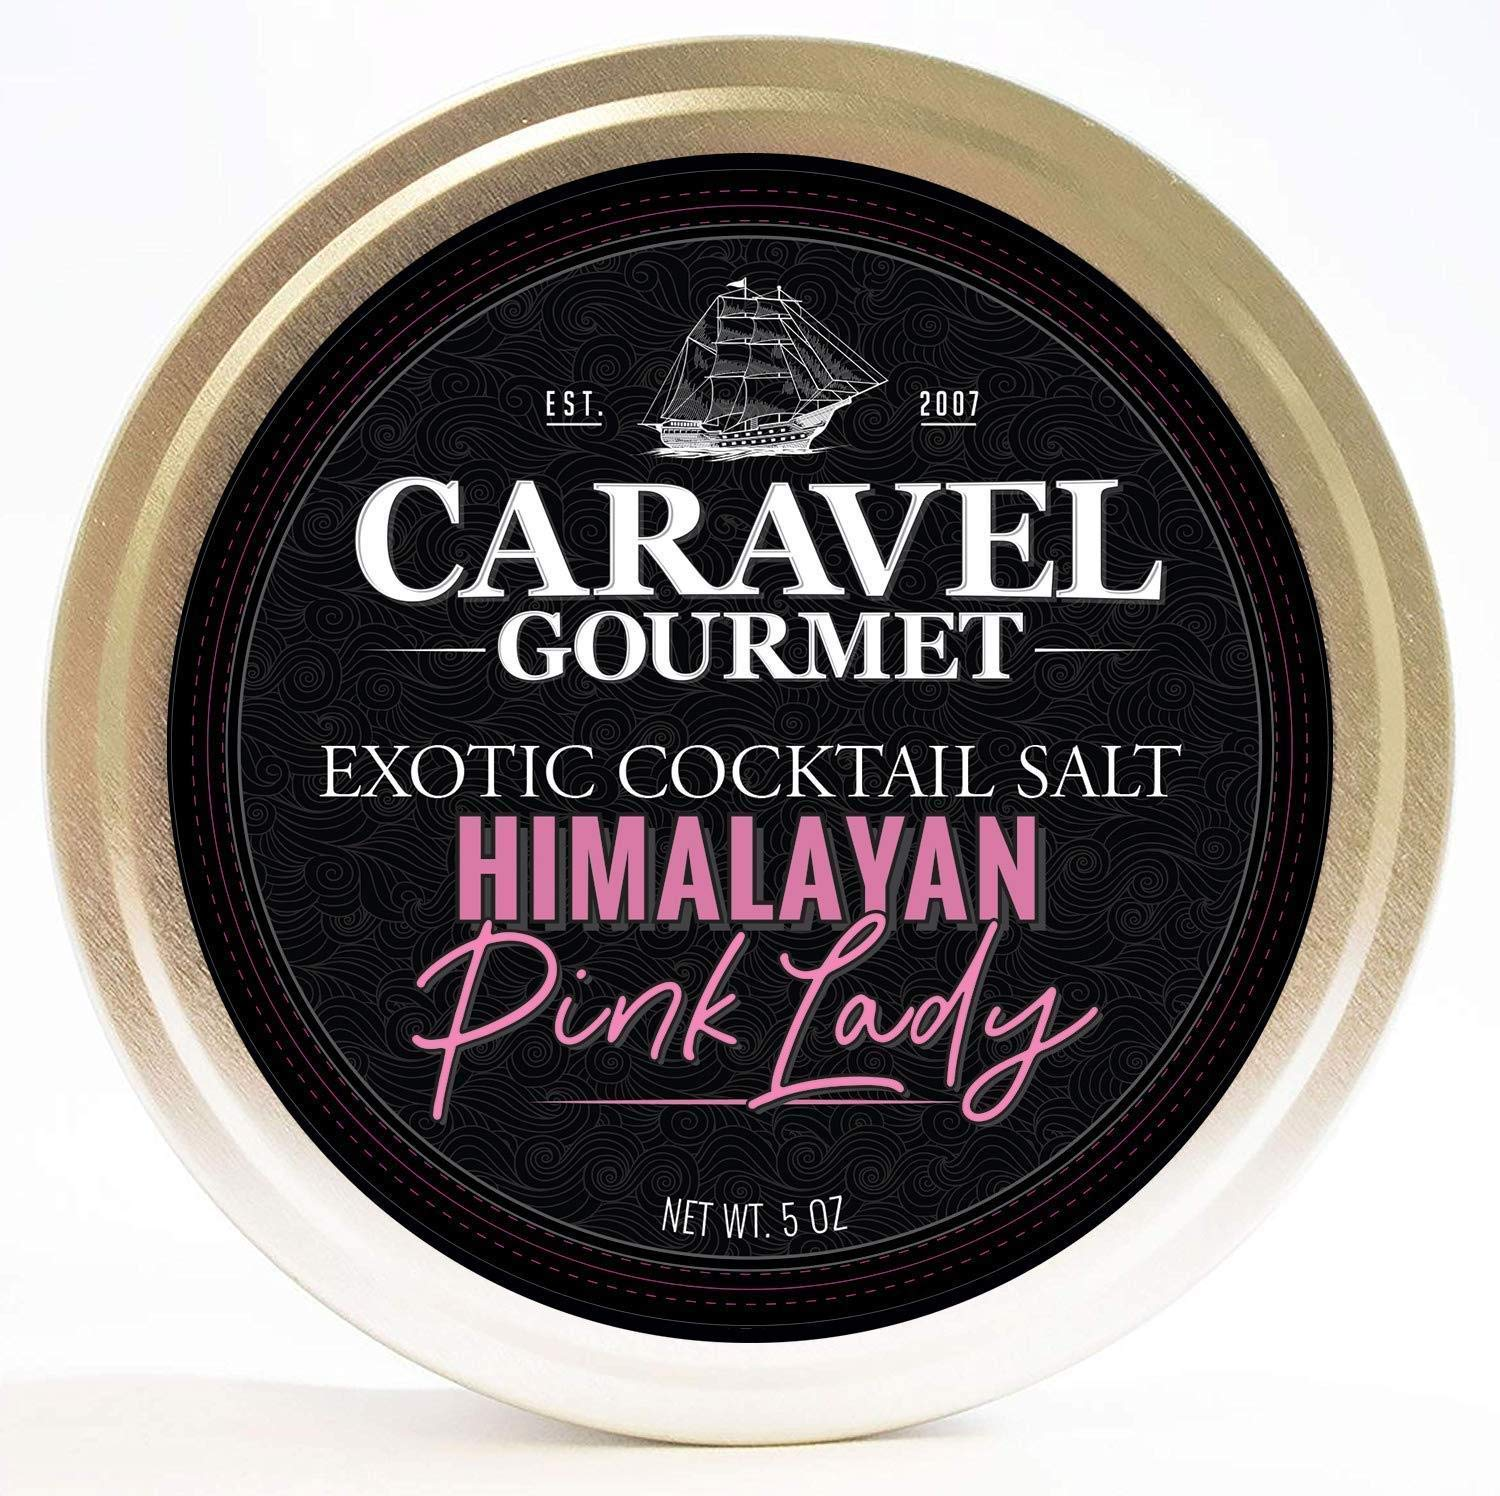 Caravel Gourmet Salt Ccktal Extc Pnk Lady 5.0 OZ (Pack of 12)